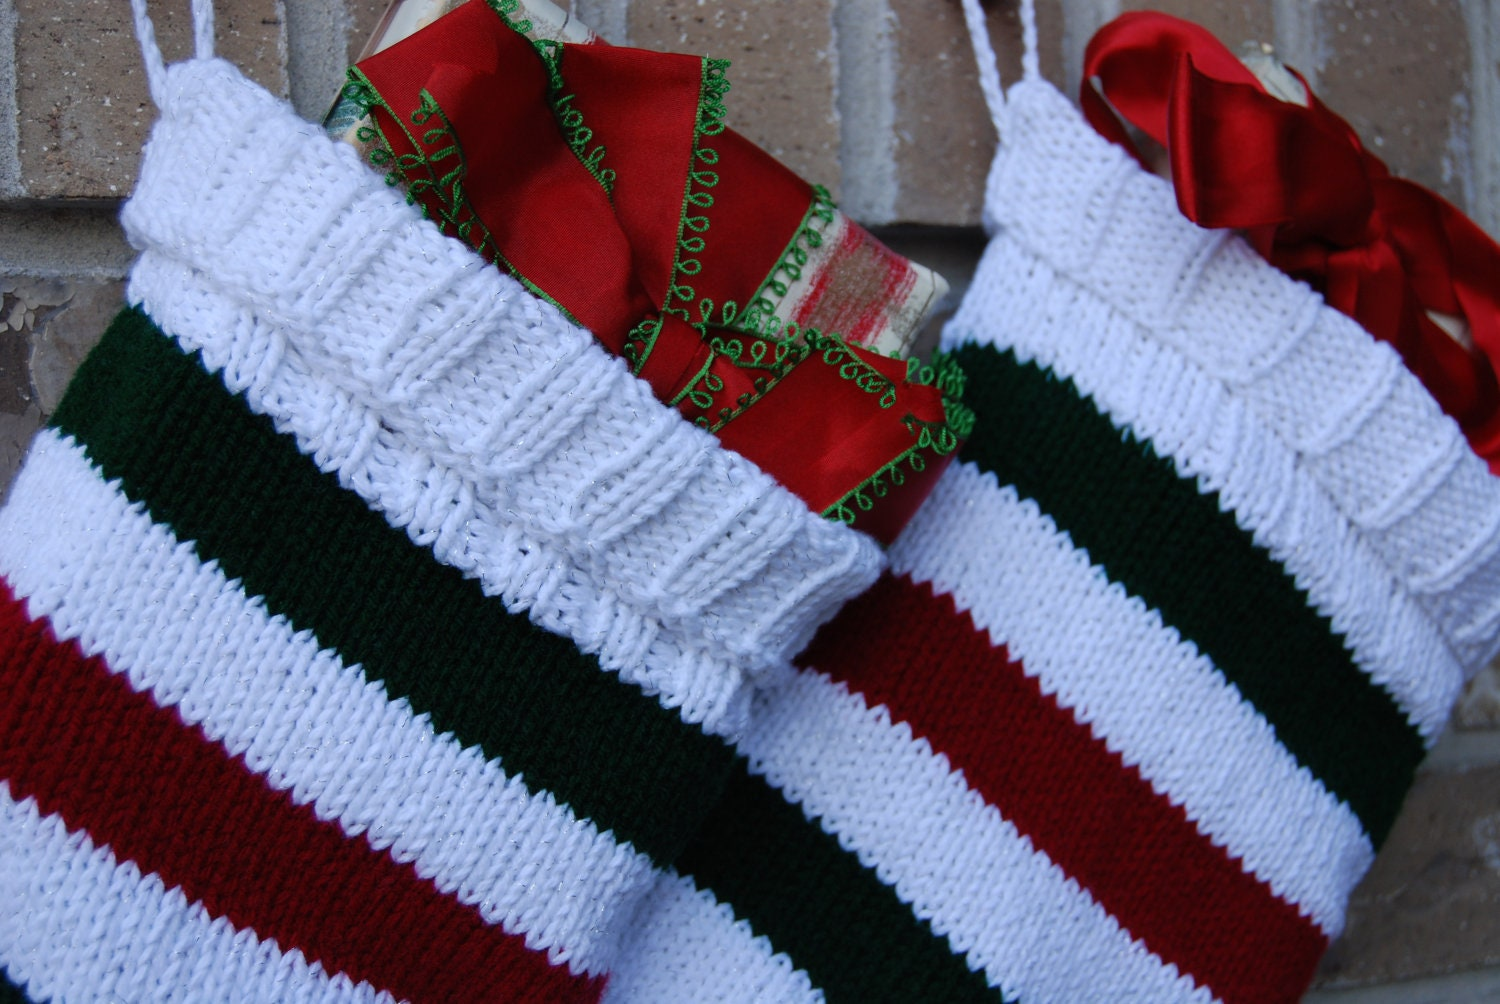 Knit Pattern For Striped Christmas Stocking : Red and green Christmas Stocking knit striped stocking knit